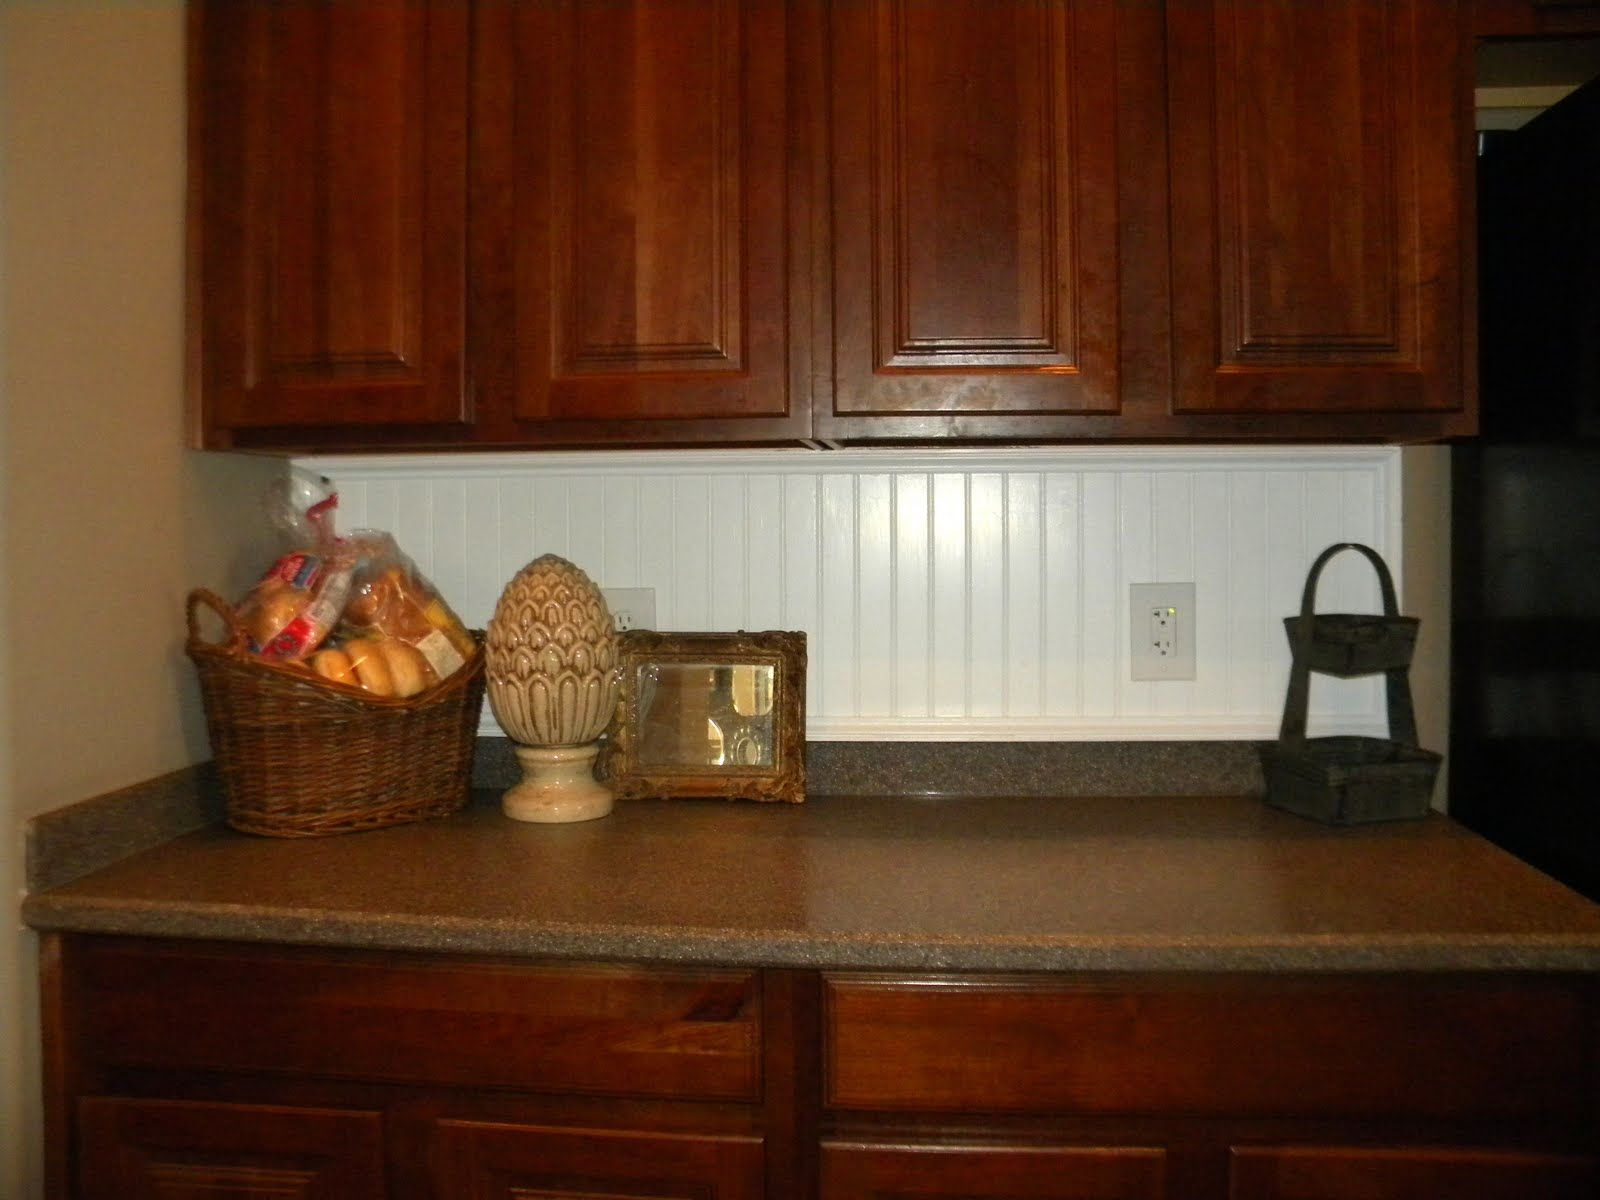 Brown beadboard kitchen backsplash with rattan furniture for the brown beadboard kitchen backsplash with rattan furniture doublecrazyfo Images